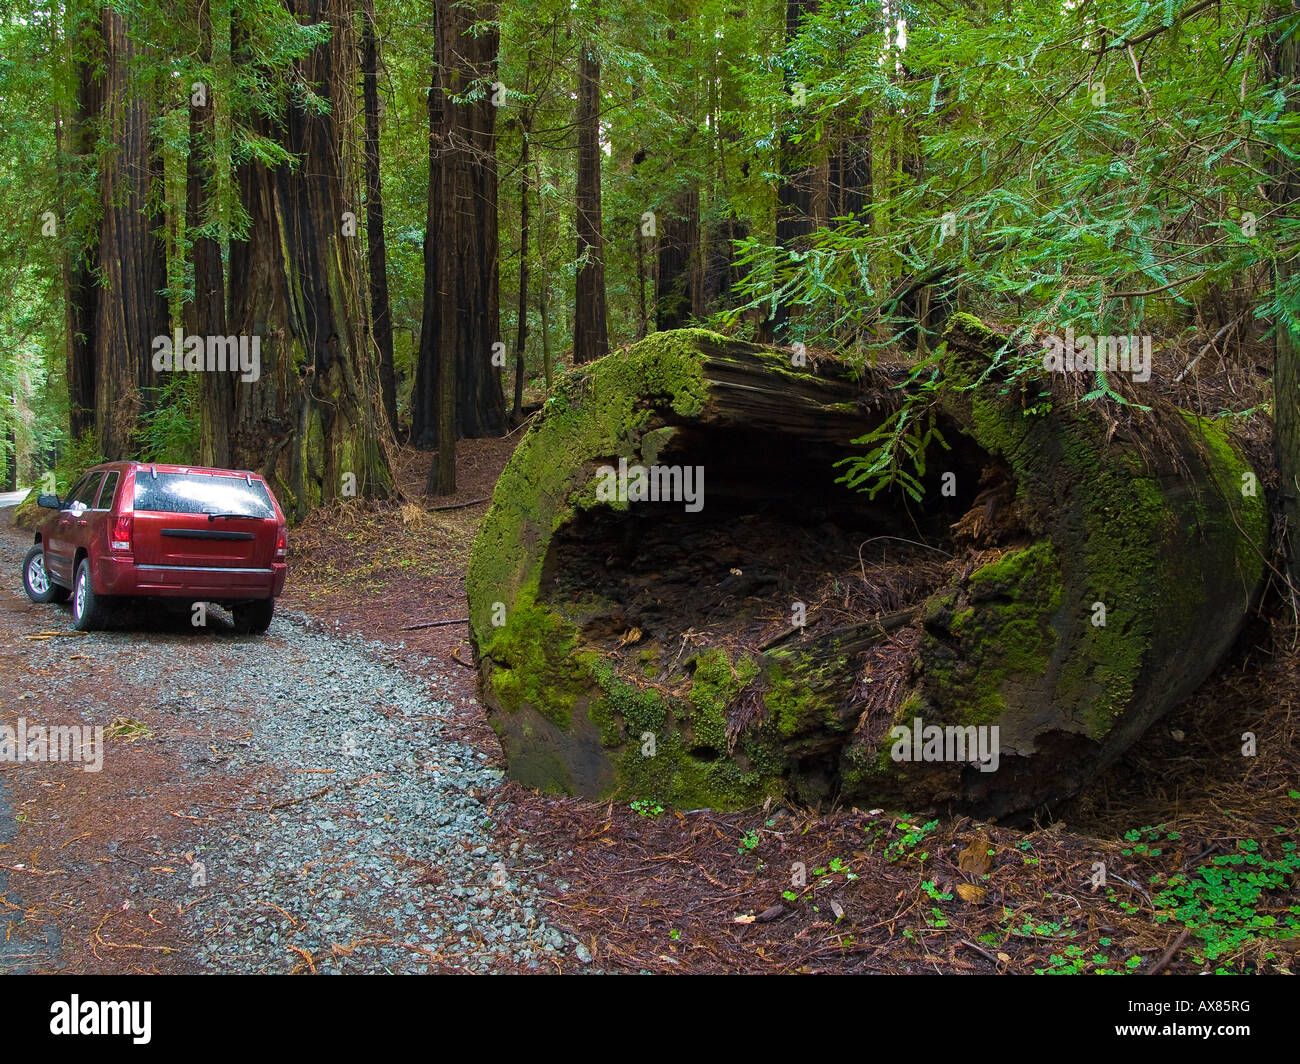 Fallen Redwood Trunk Avenue of the Giants Humboldt Redwoods State Park California USA - Stock Image